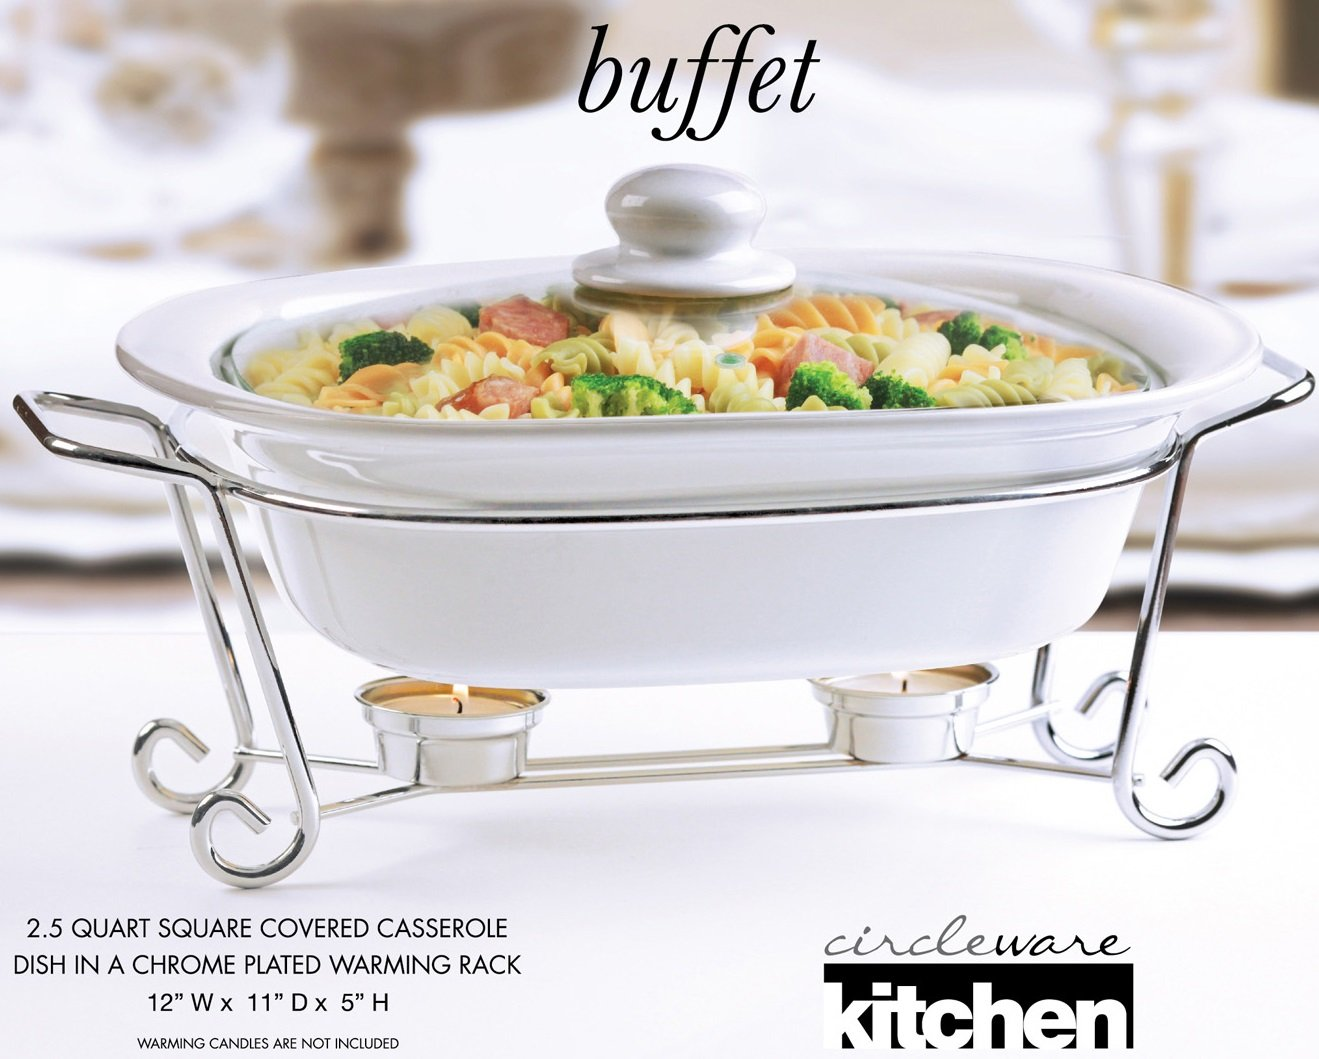 Circleware Ceramic Cookware Chafer Buffet Server/warmer/baker Serving Tray with Glass Lid and Metal Serving Stand, 2.5 Quart, 12'' W x 11'' D x 5'' H, Limited Edition Serveware Cookware Bakeware Square by Circleware (Image #2)